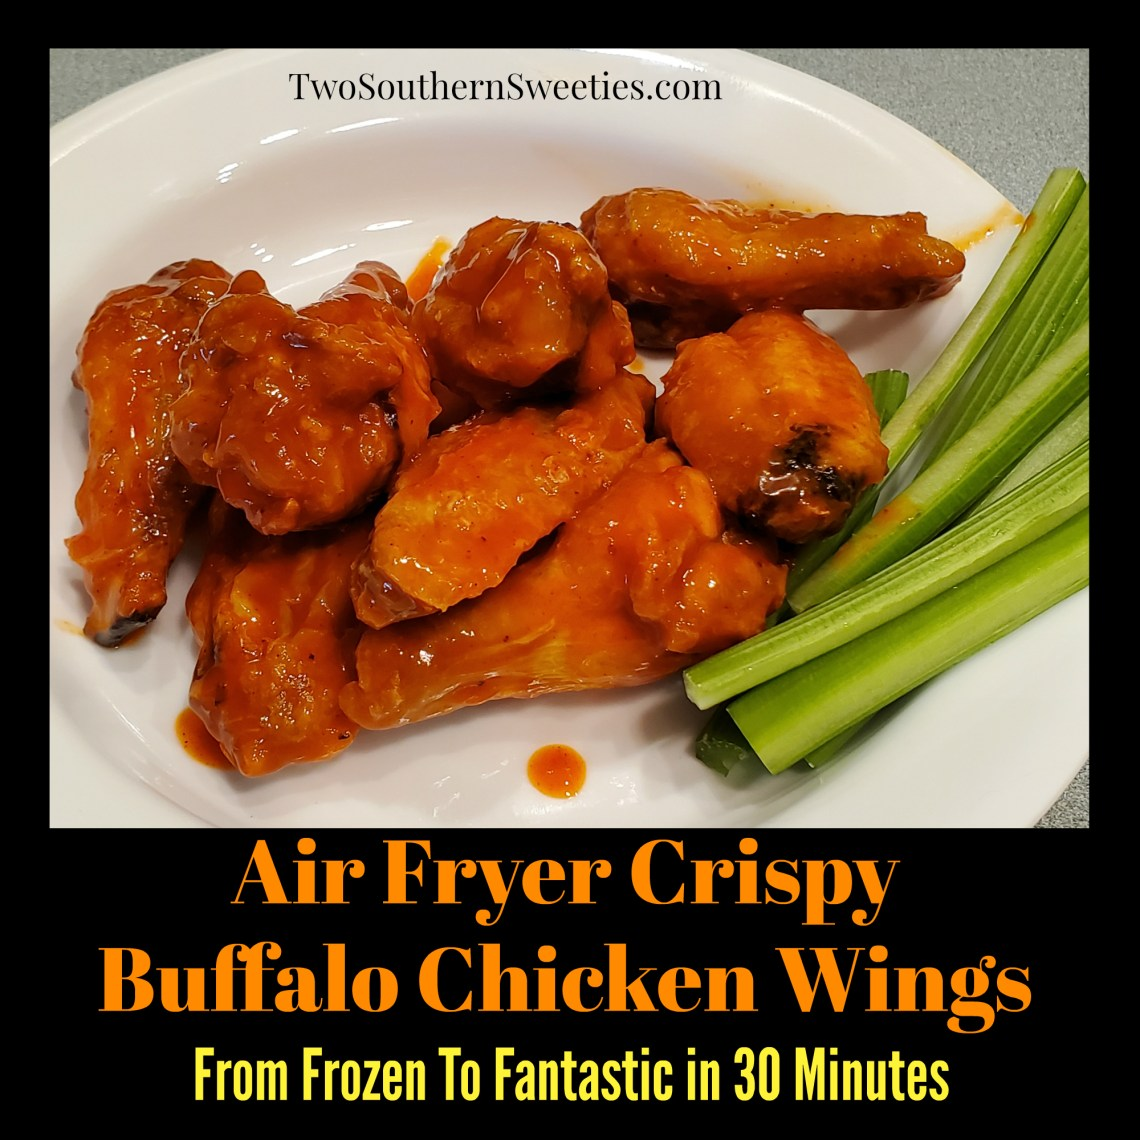 Air Fryer Crispy Buffalo Chicken Wings